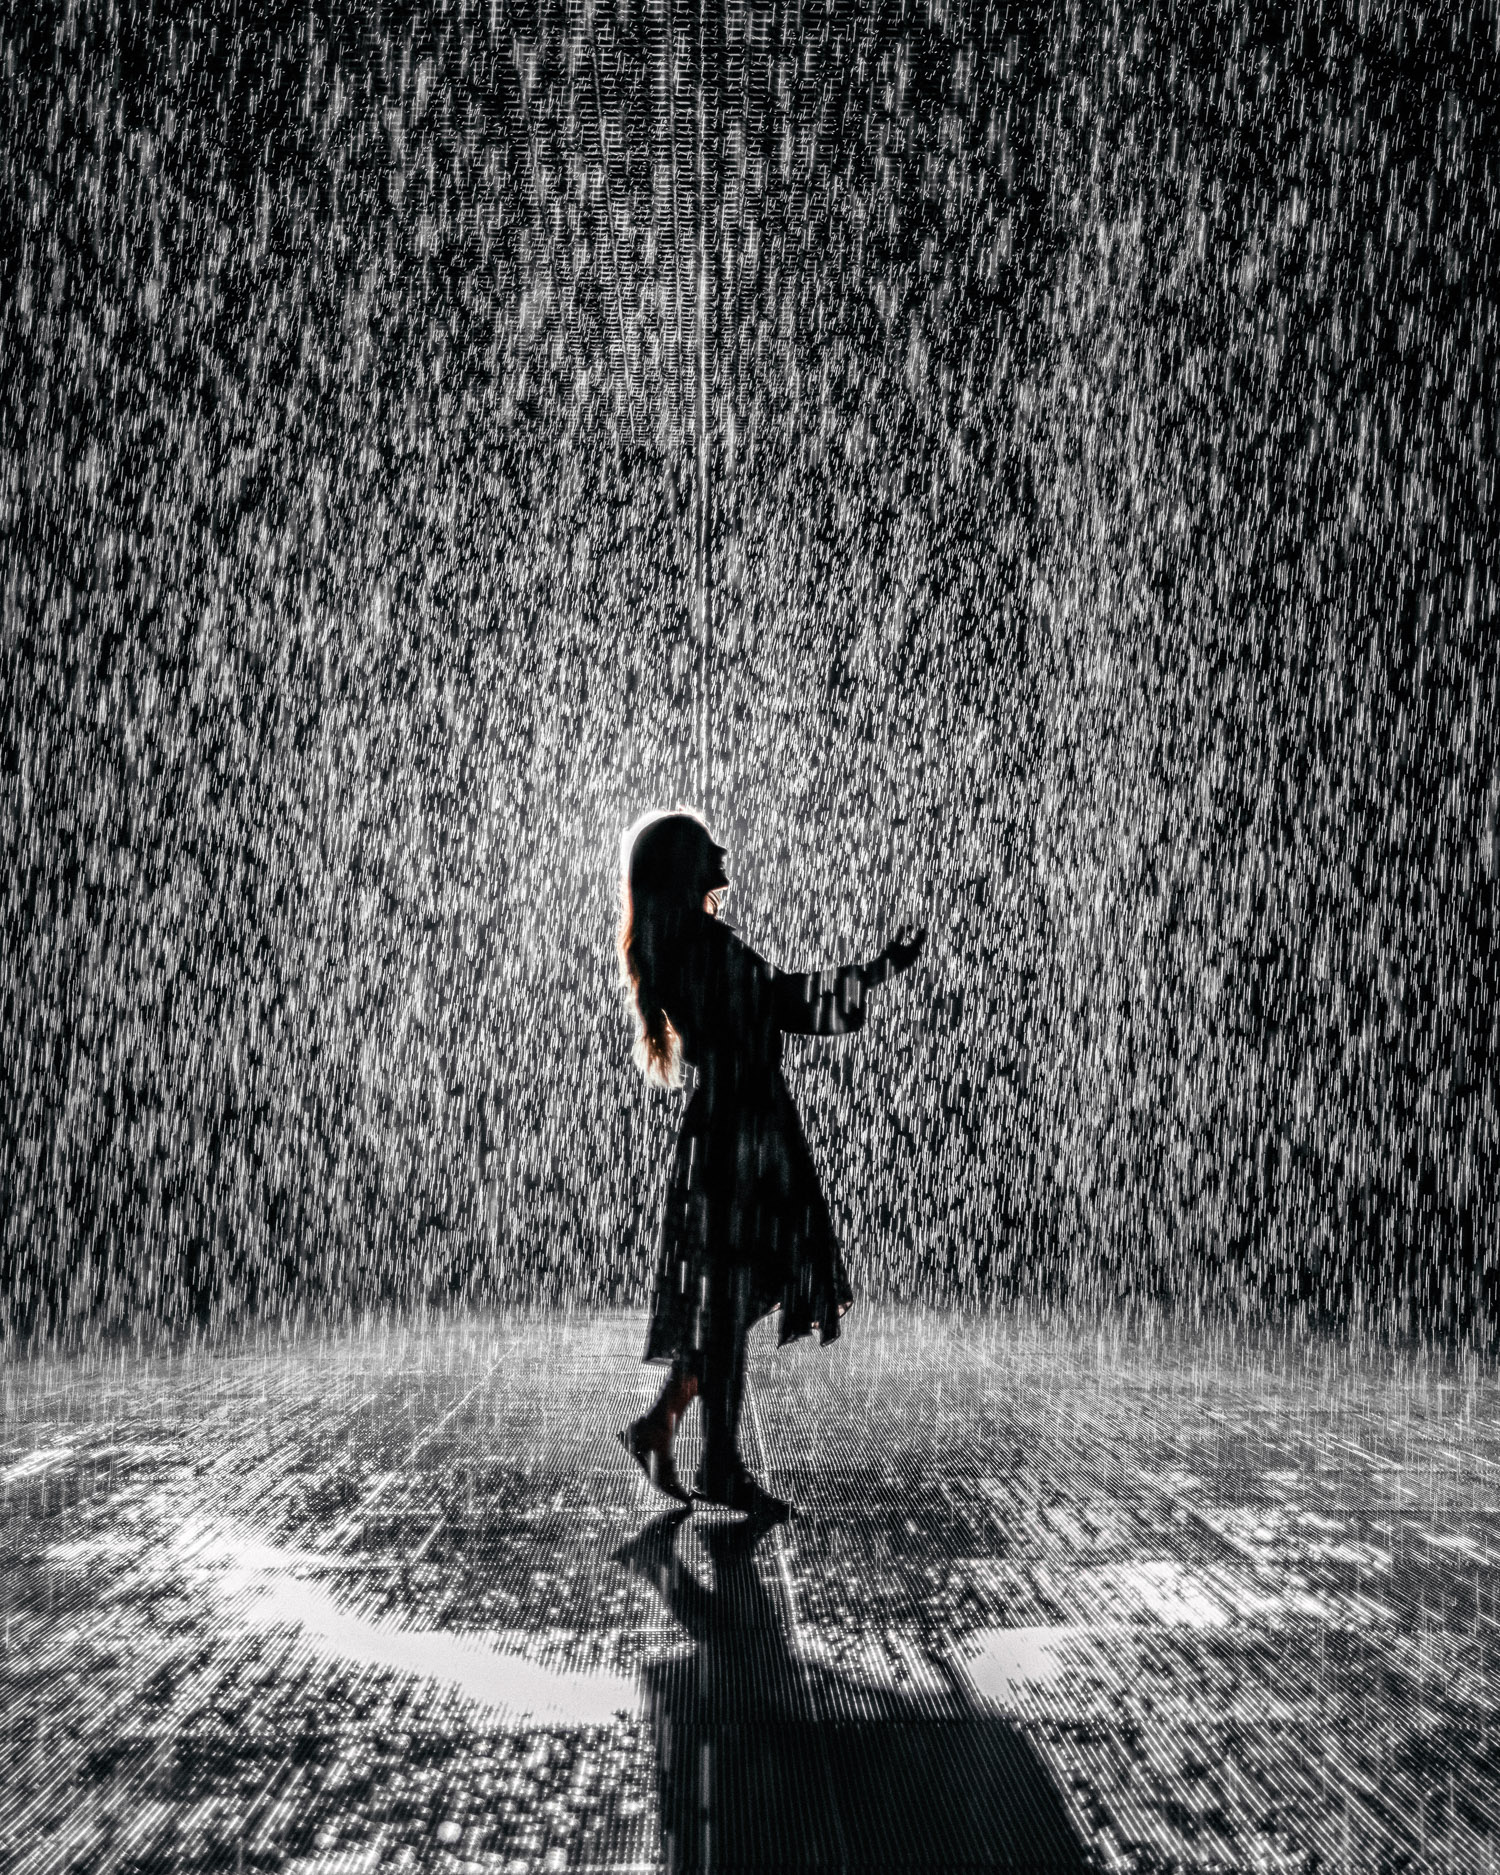 Things to Do in Sharjah - Visit the Rain Room, Sharjah Art Foundation